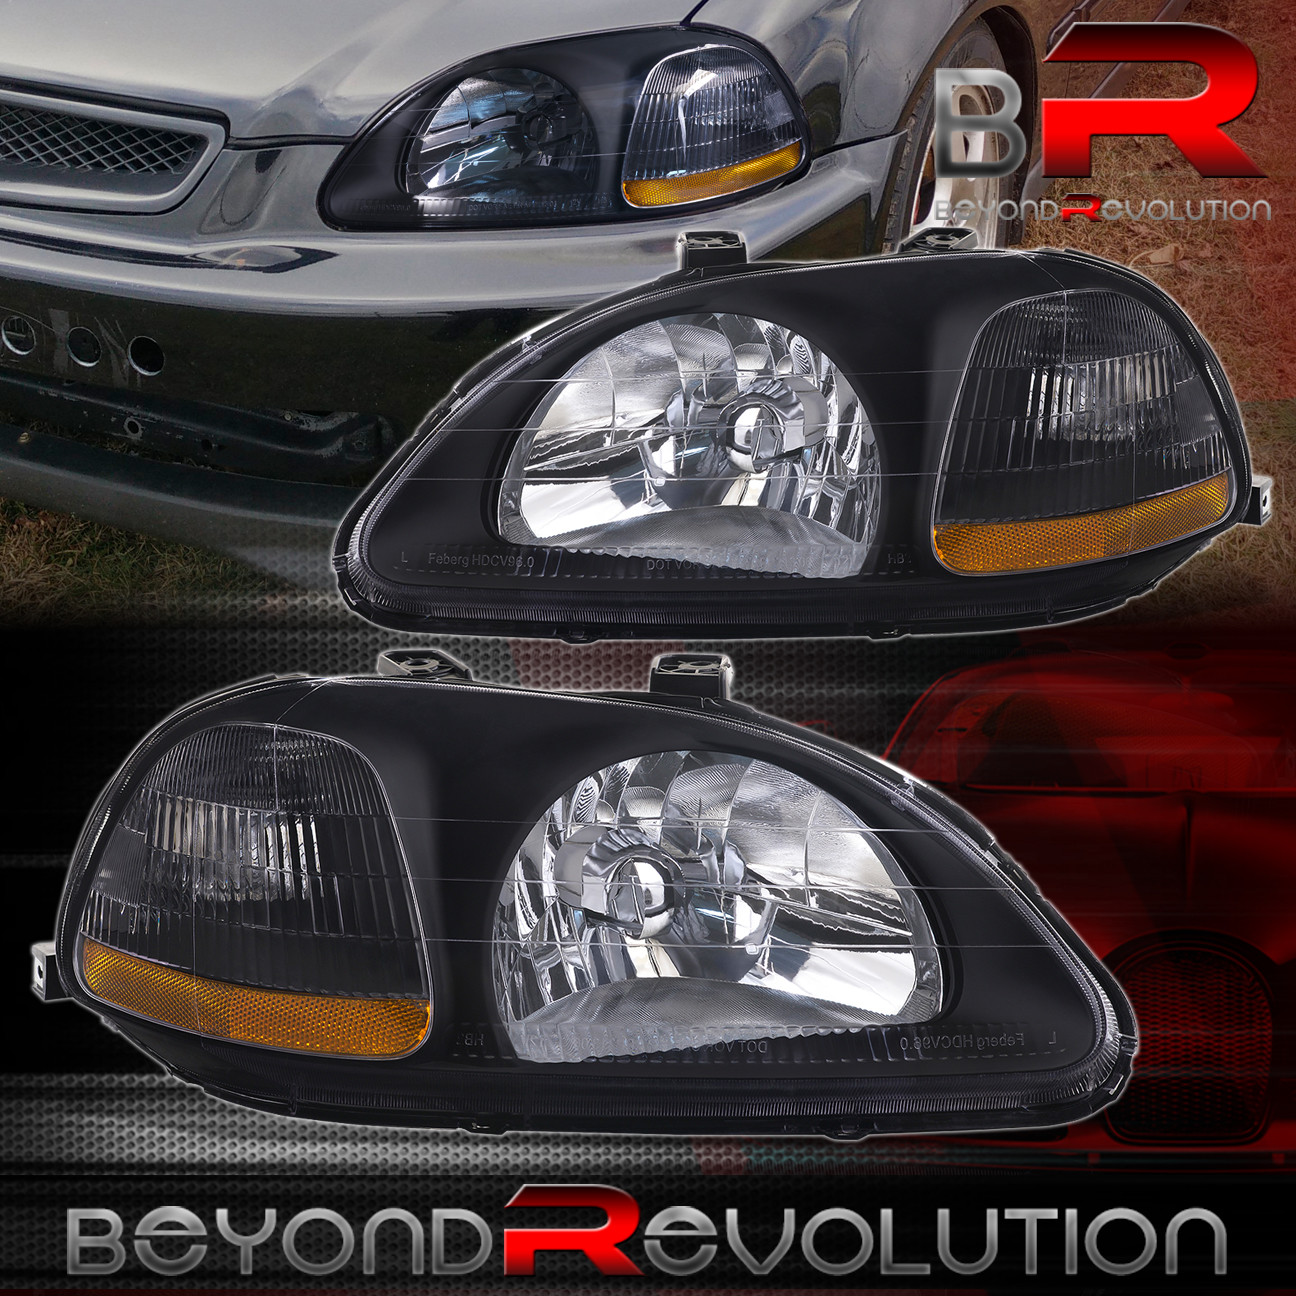 1996-1998 HONDA CIVIC EX LX DX SI JDM BLACK HOUSING AMBER HEADLIGHTS EK EK6 EK9 | eBay